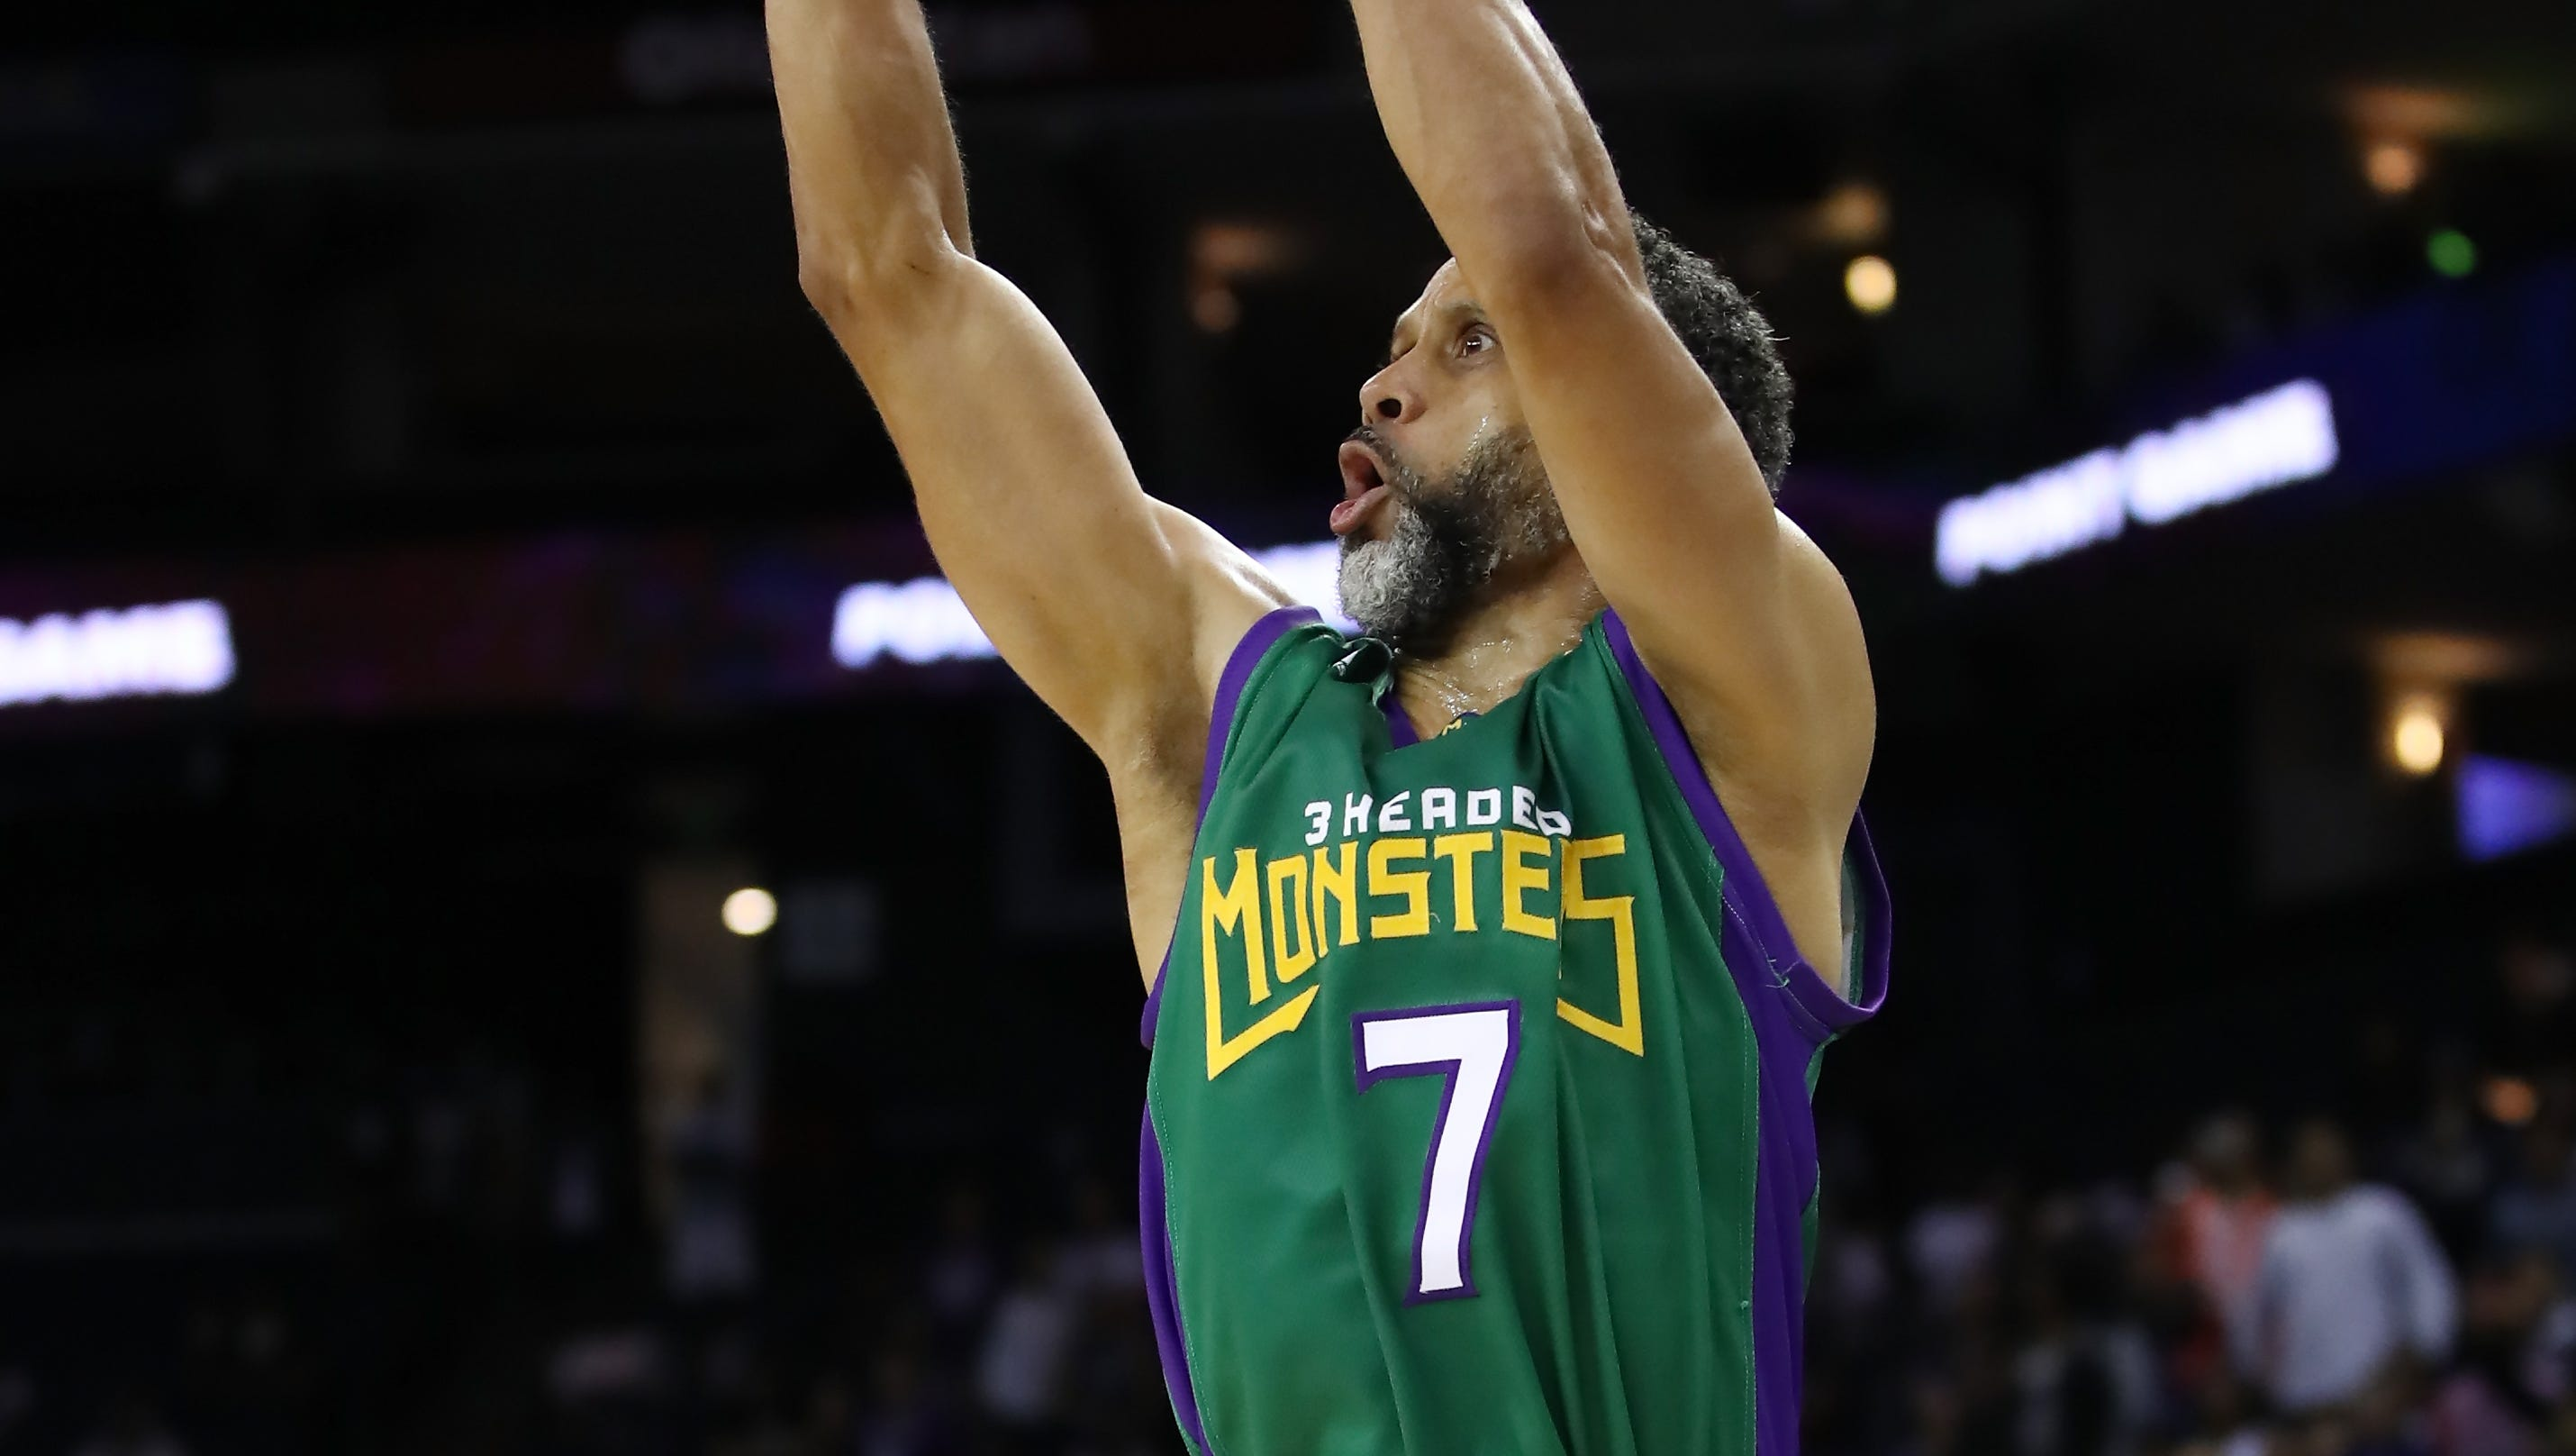 detroitnews.com - Rod Beard, The Detroit News - Big3 is old-school basketball - with some differences